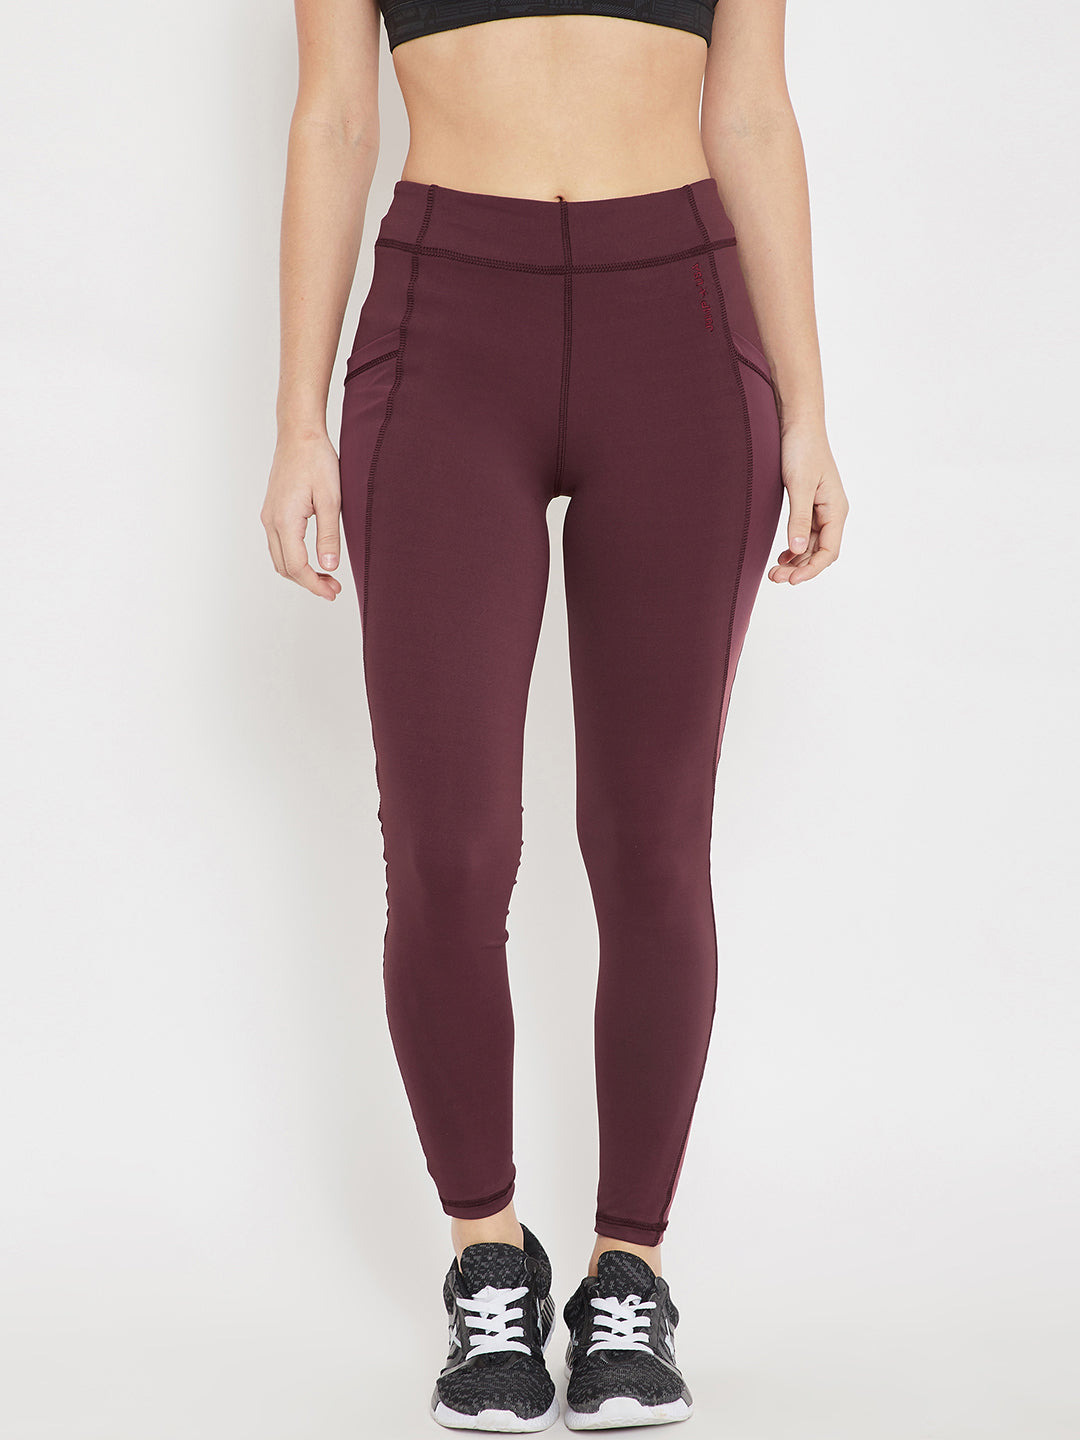 Women Sports Maroon Tights